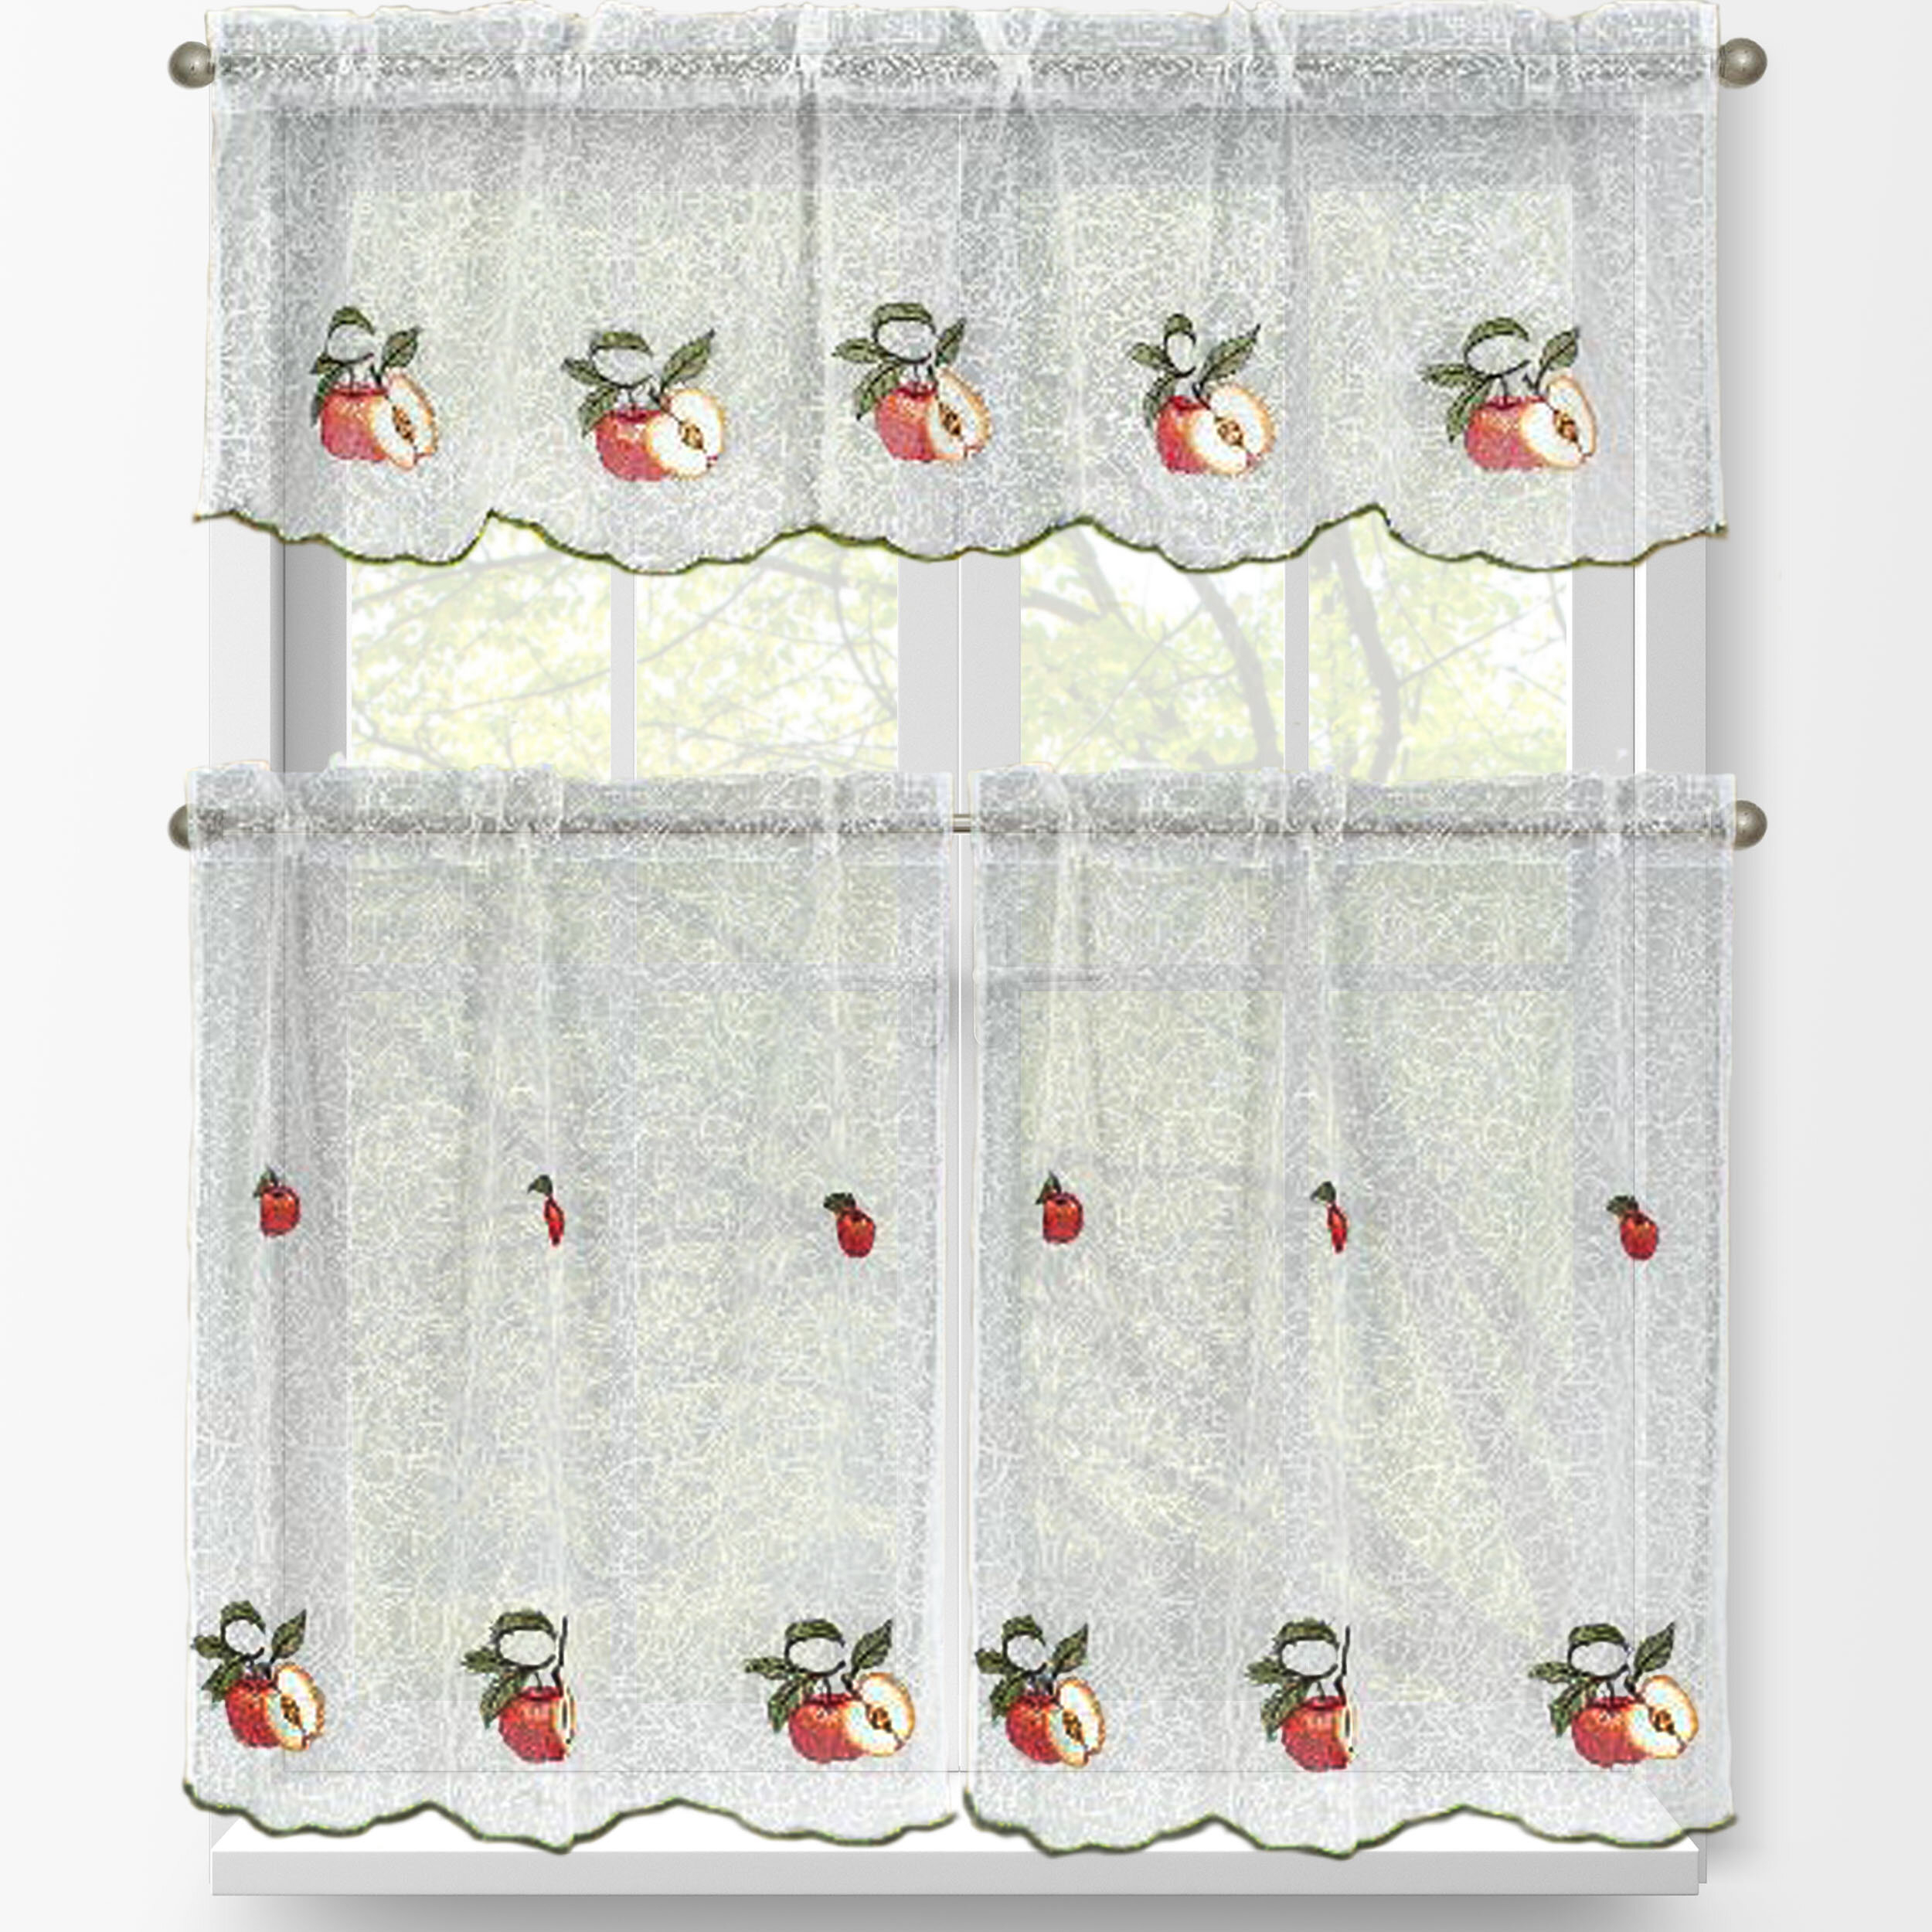 Red Apples 3 Piece Embroidered Kitchen Tier And Valance Set Intended For Red Delicious Apple 3 Piece Curtain Tiers (Gallery 5 of 20)